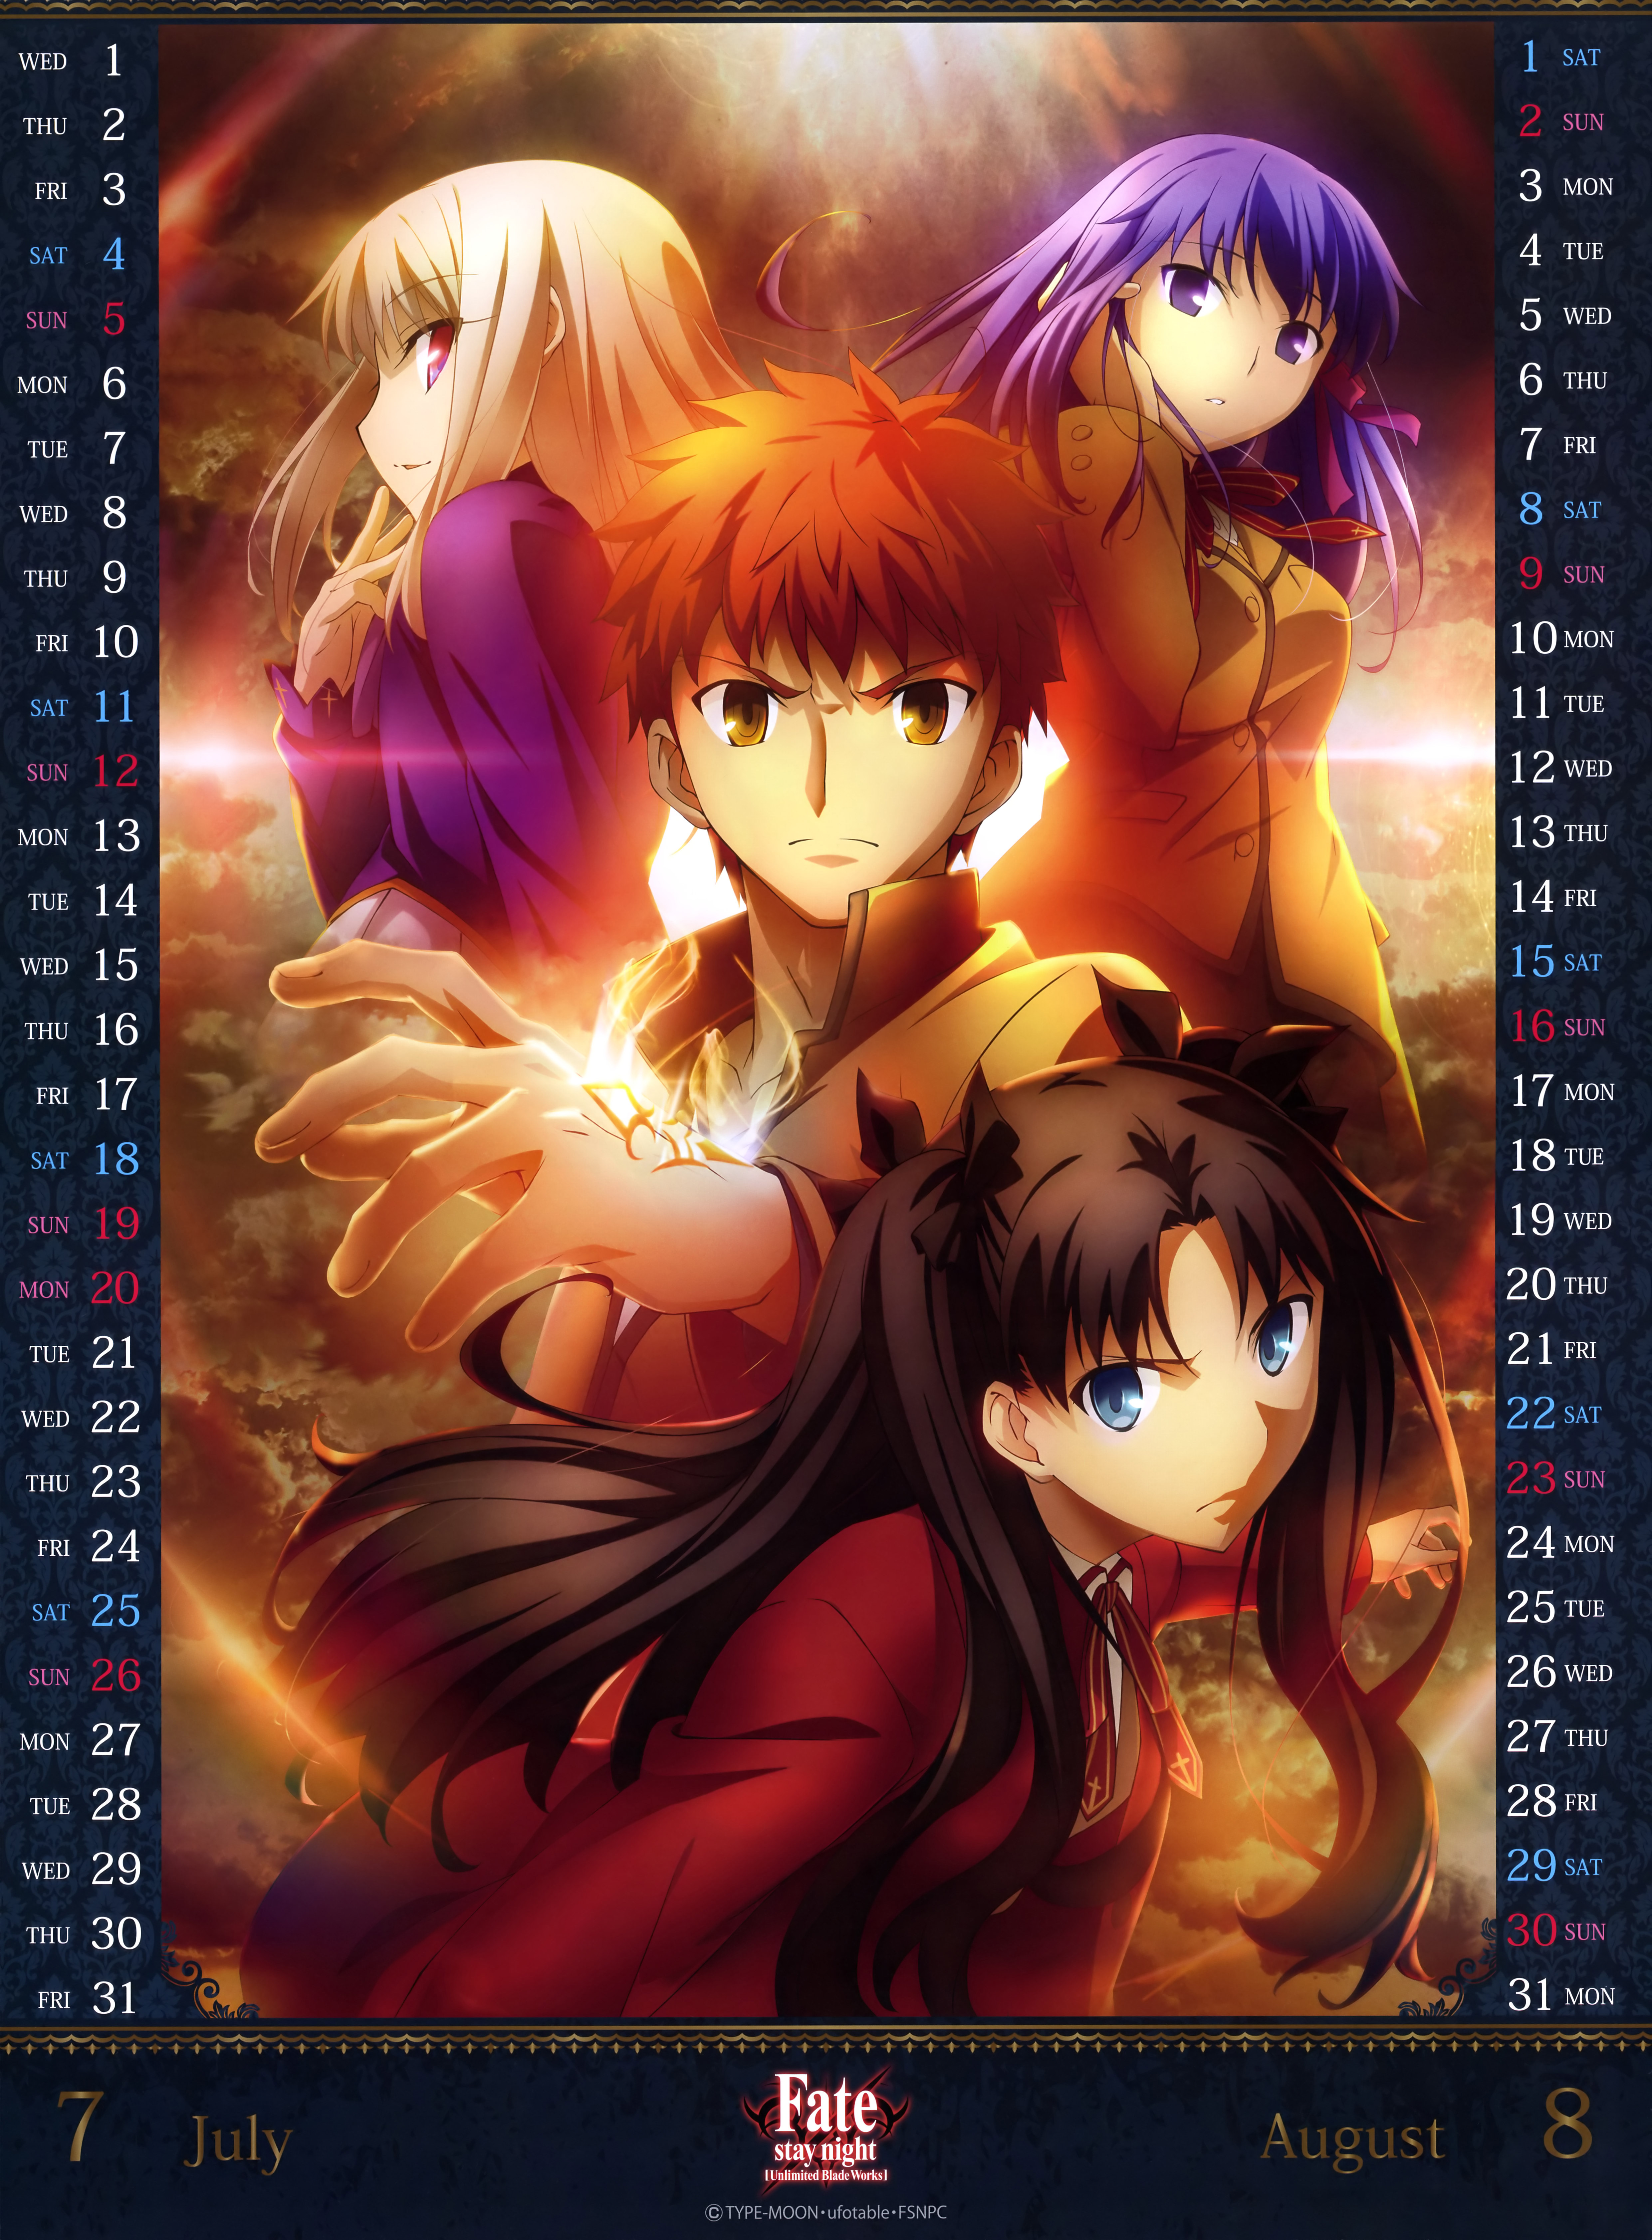 Fate-stay-night--Unlimited-Blade-Works-2015-Anime-Calendar-Image-4